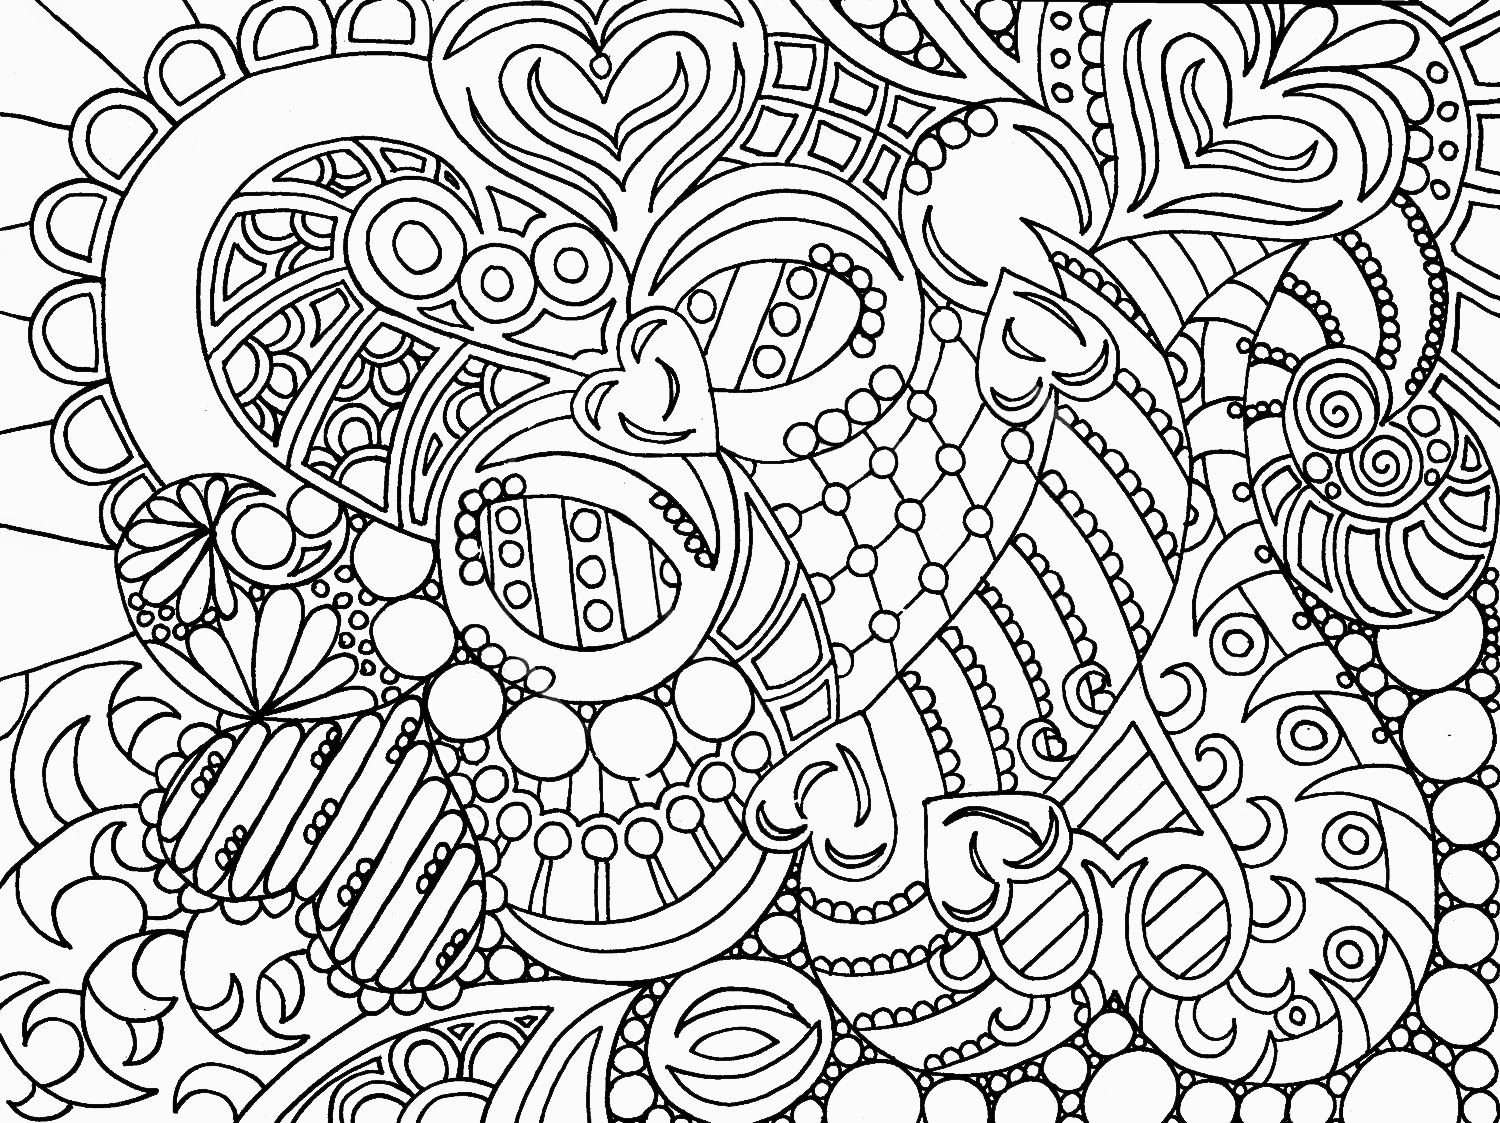 Free Printable 8 X 11 Adult Coloring Pages Coloring Sheets